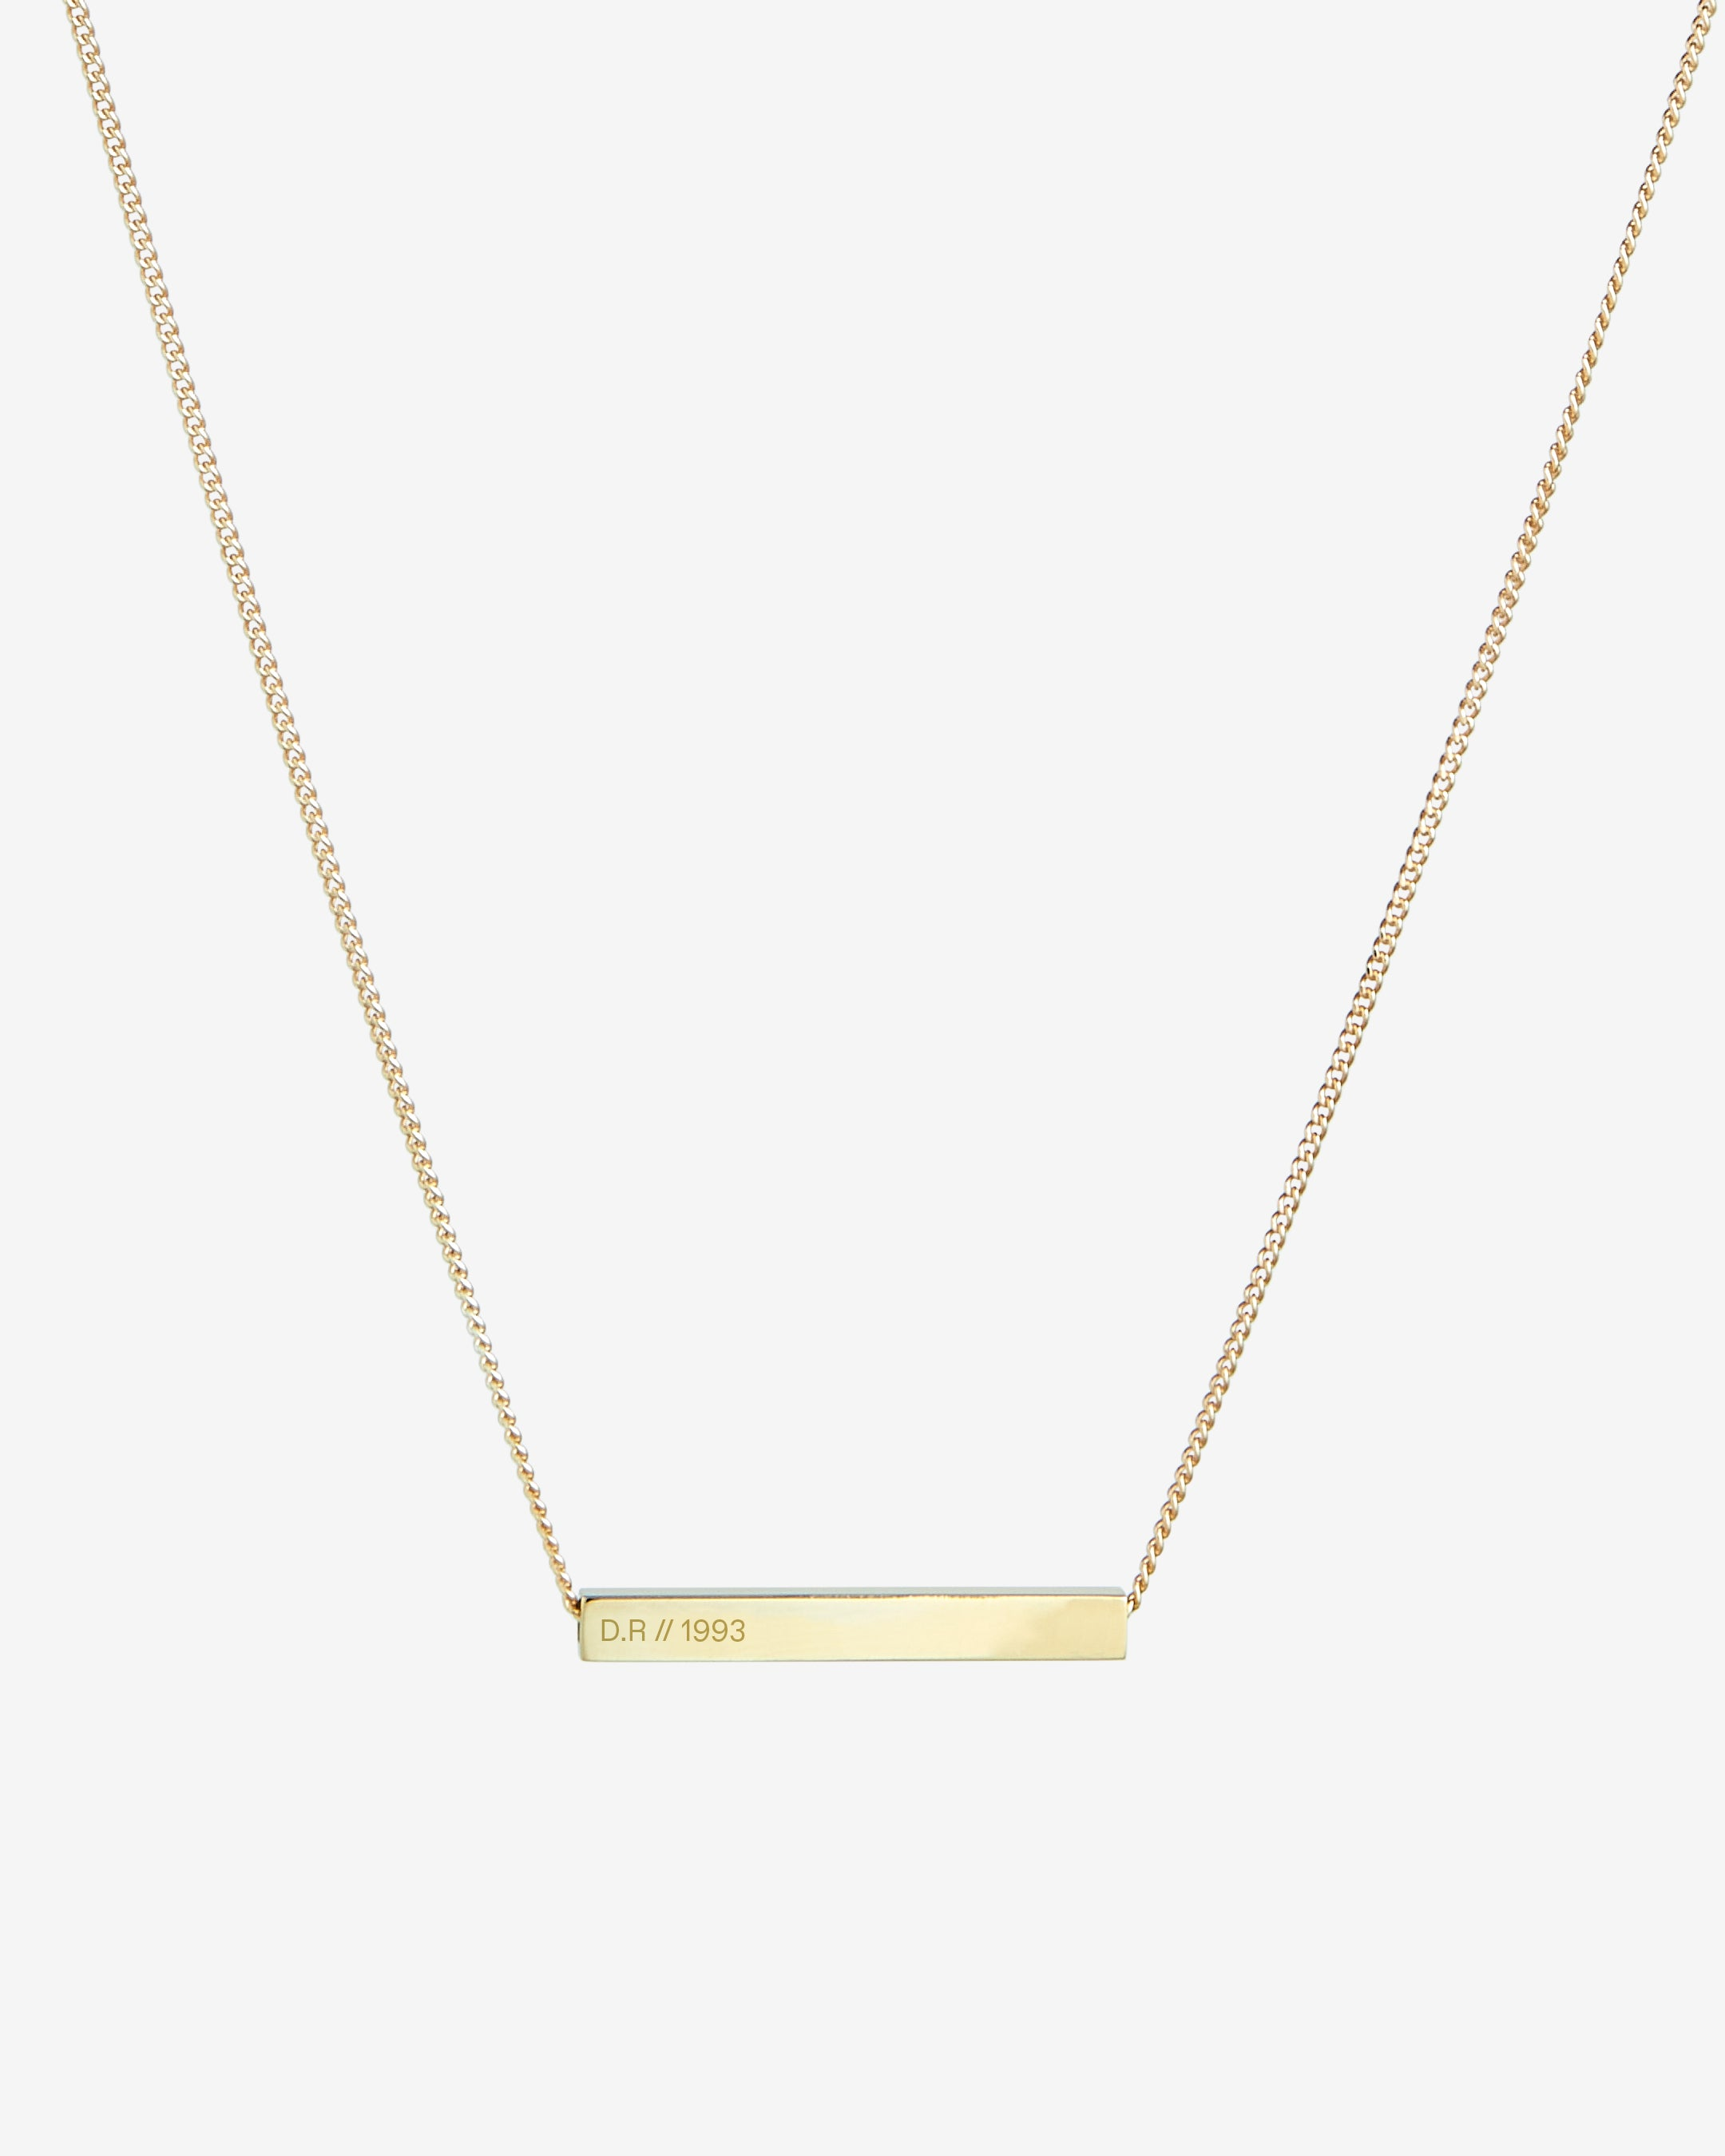 personalise-necklace